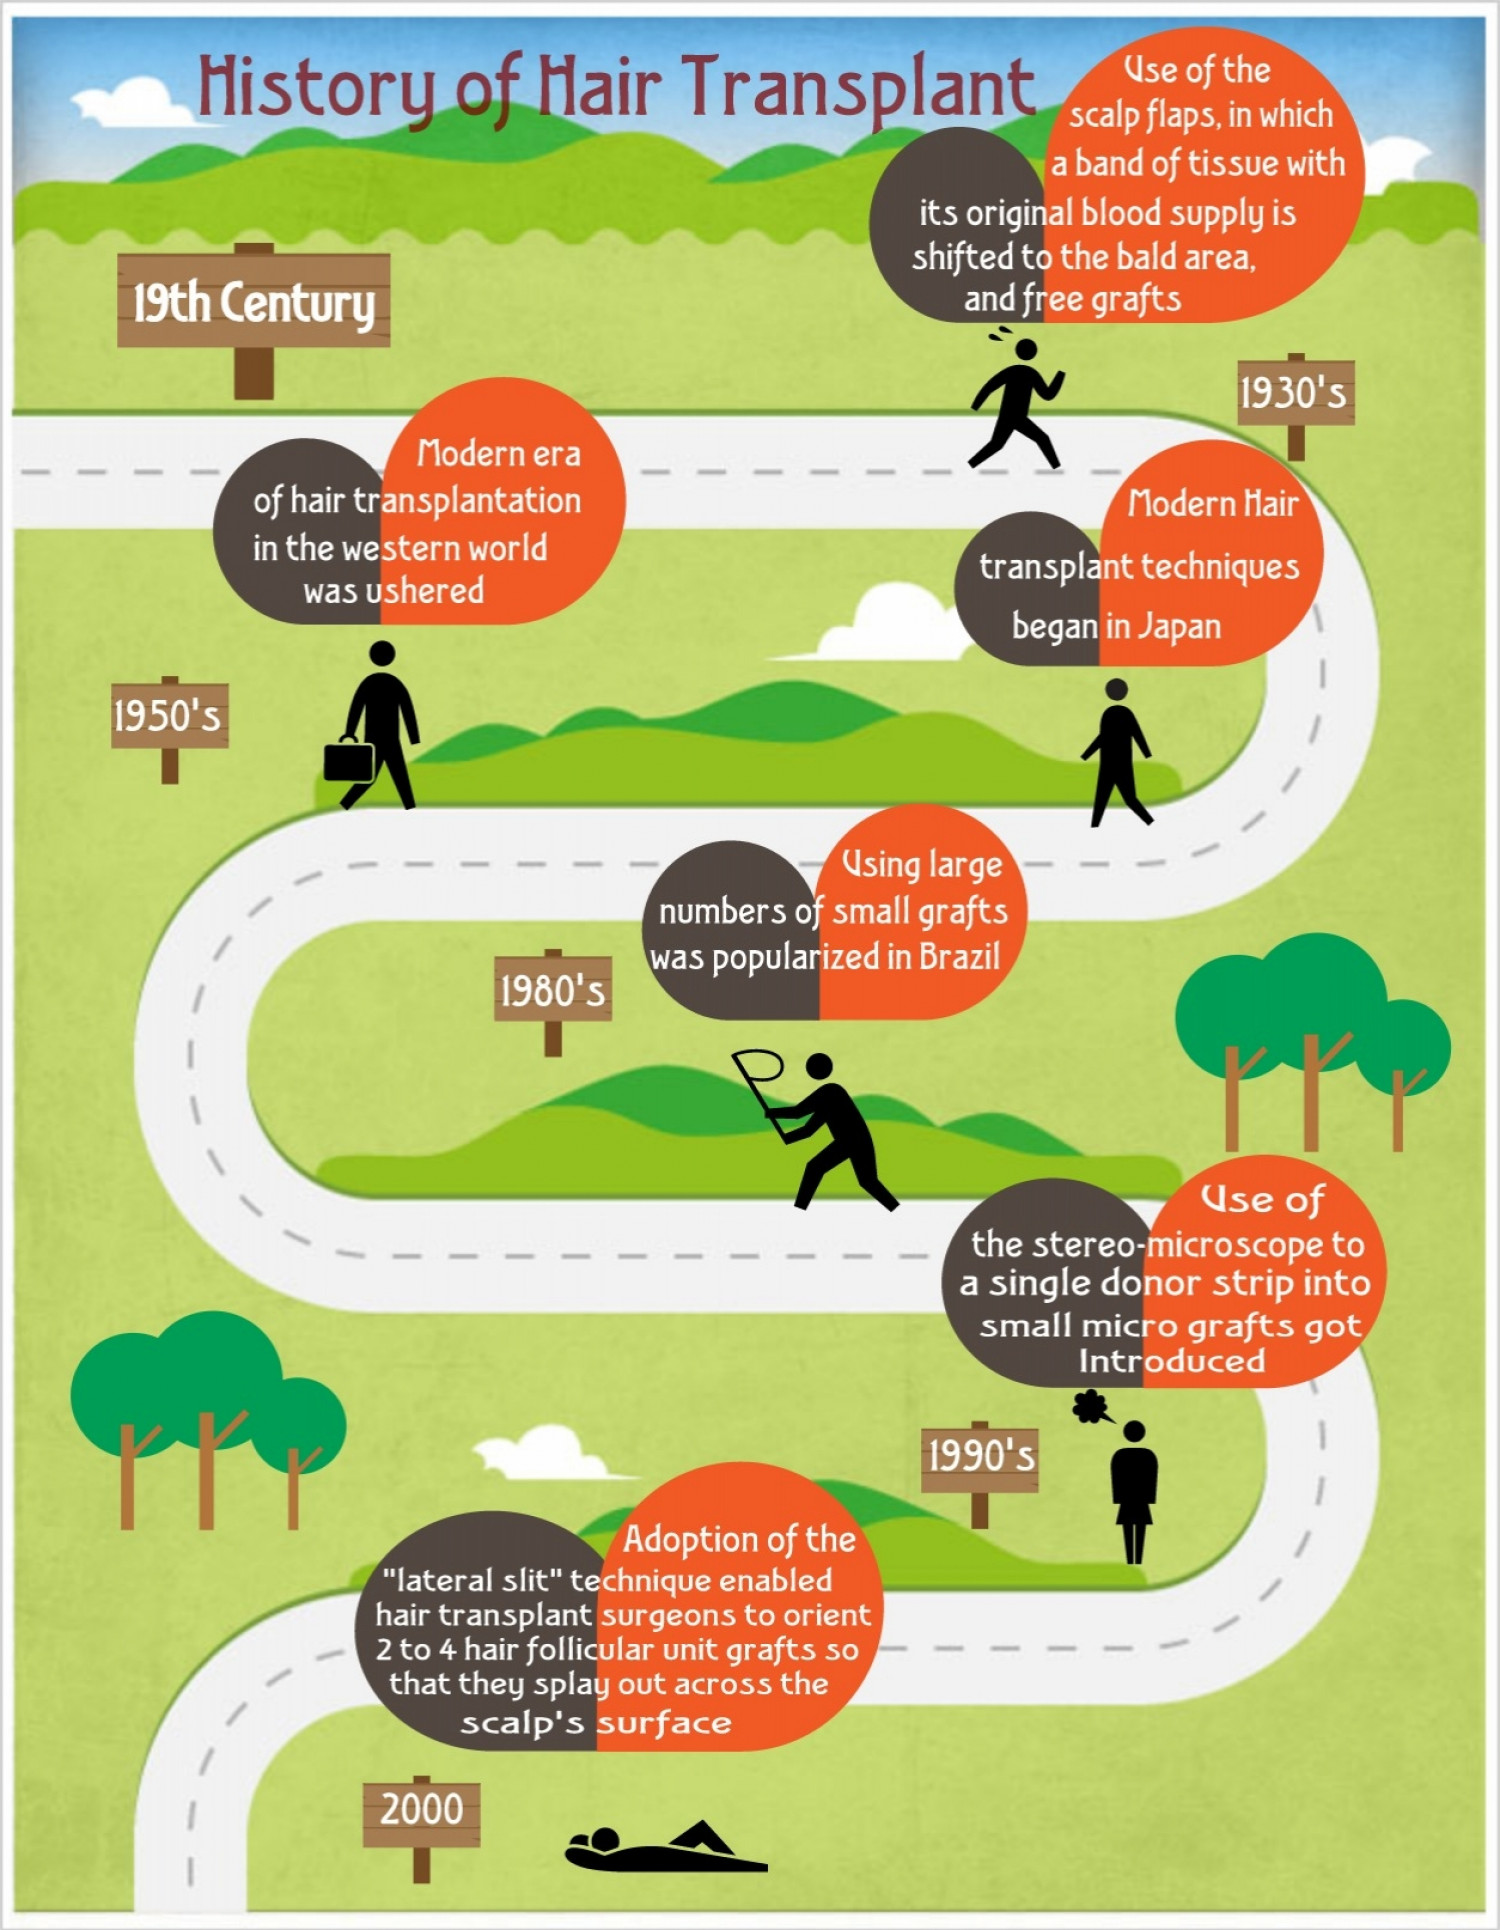 History of Hair Transplant Surgery Infographic